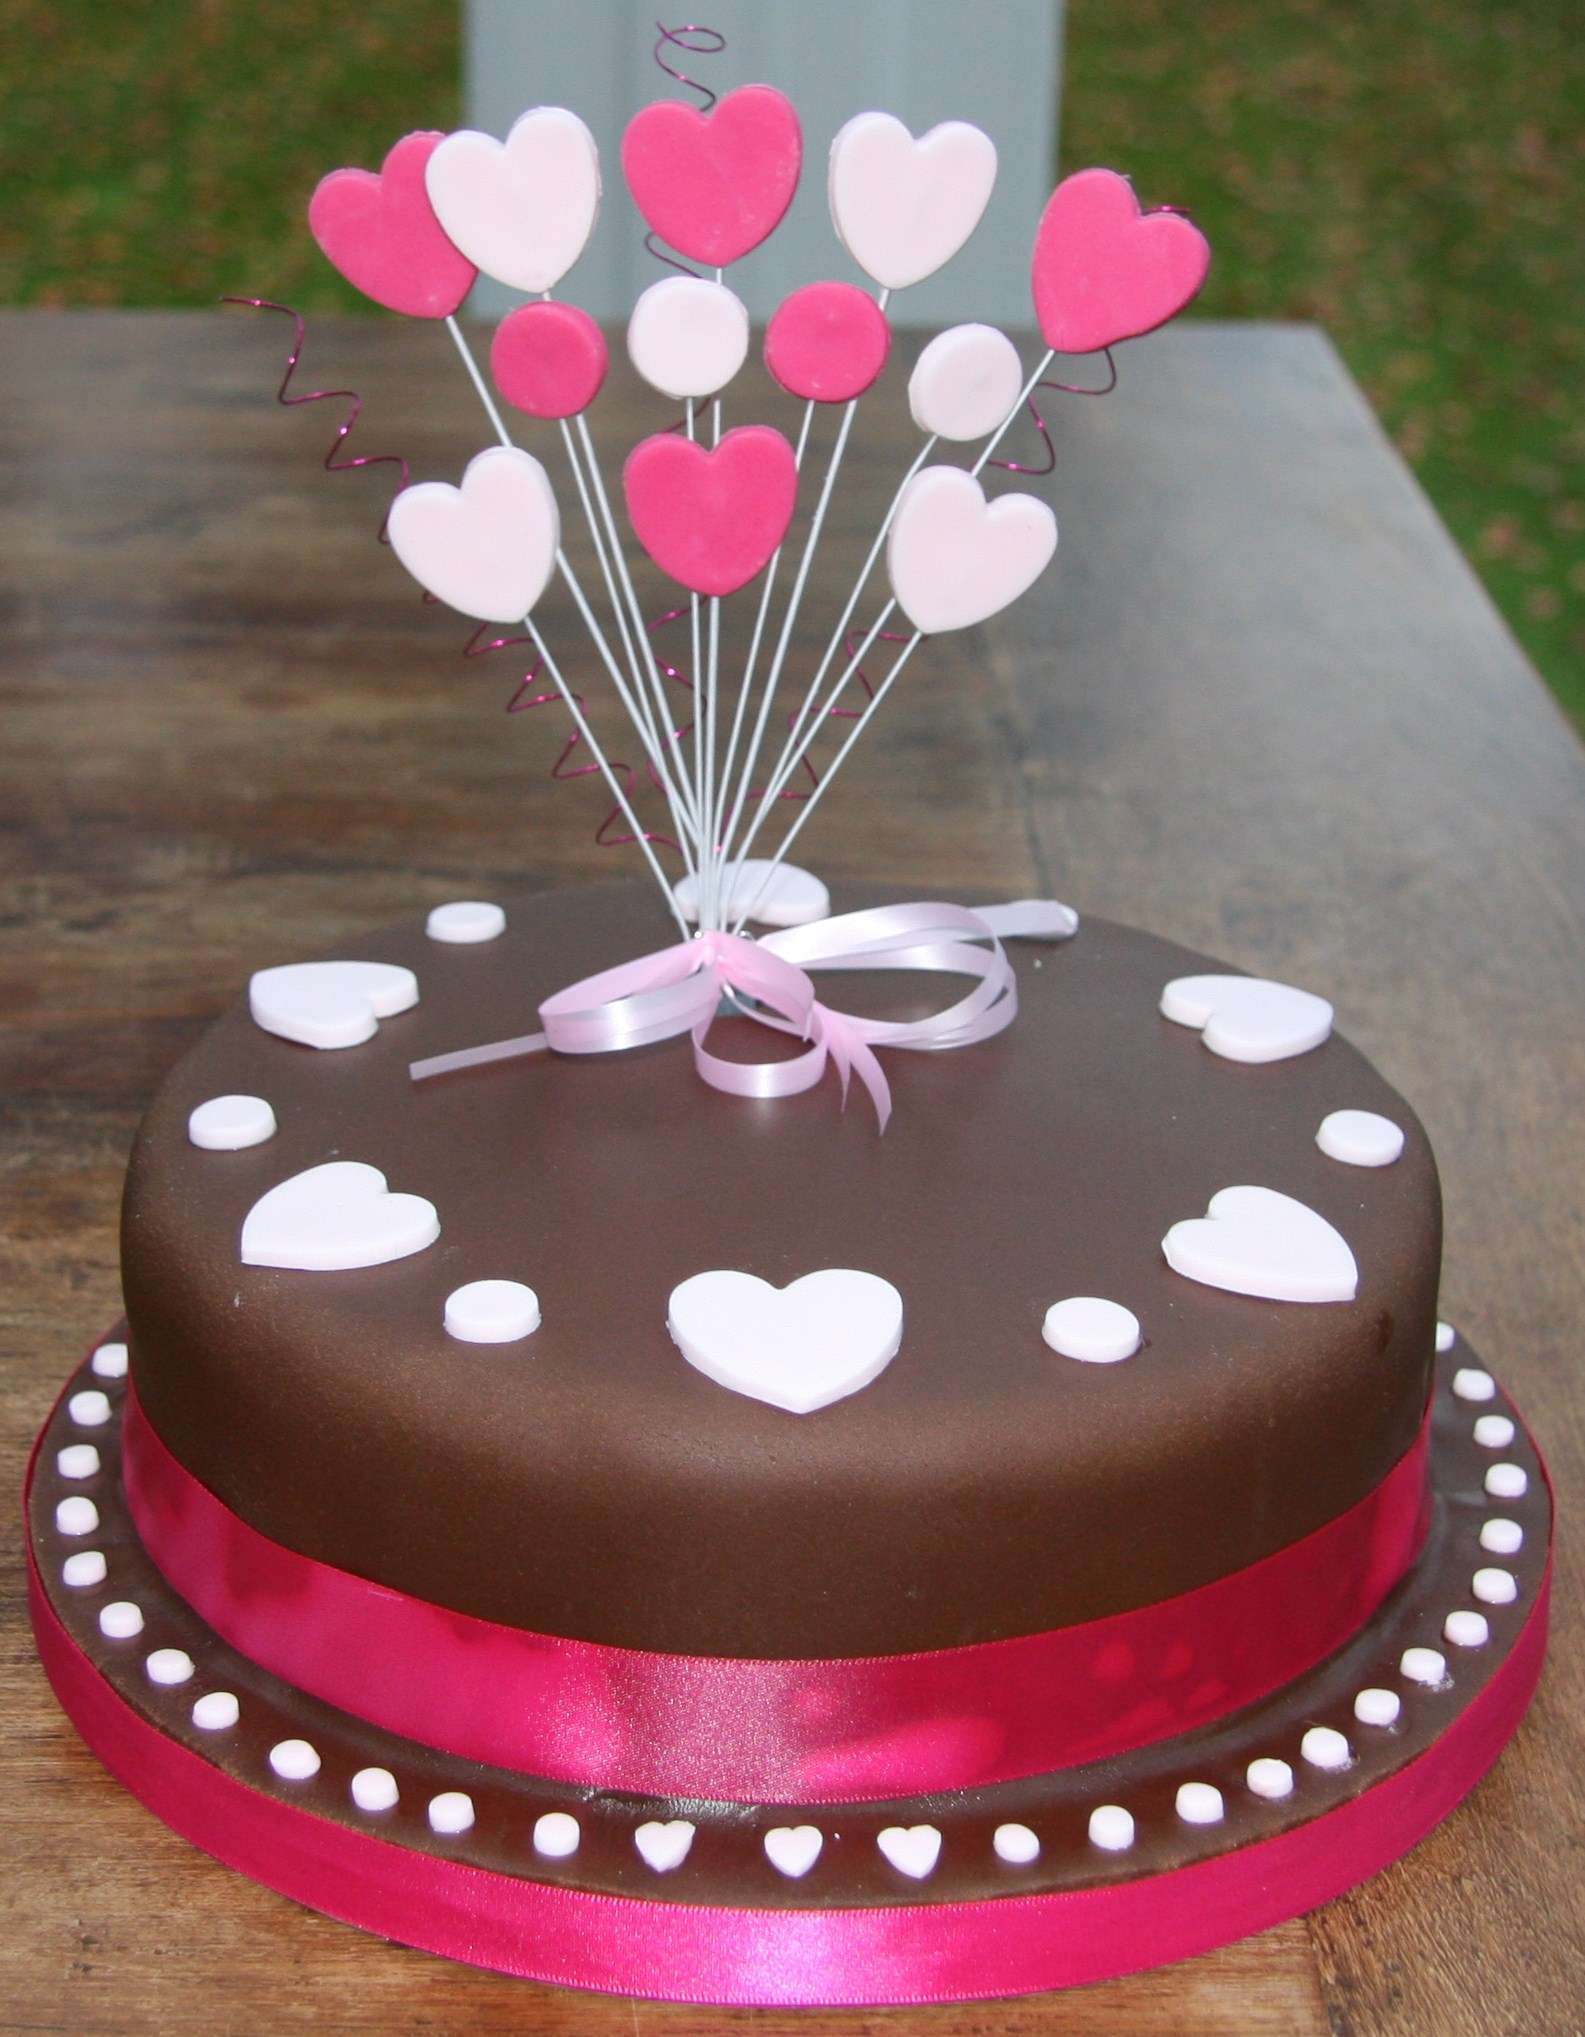 Cake Designs And Images : Chocolate Birthday Cake with Hearts   lovinghomemade